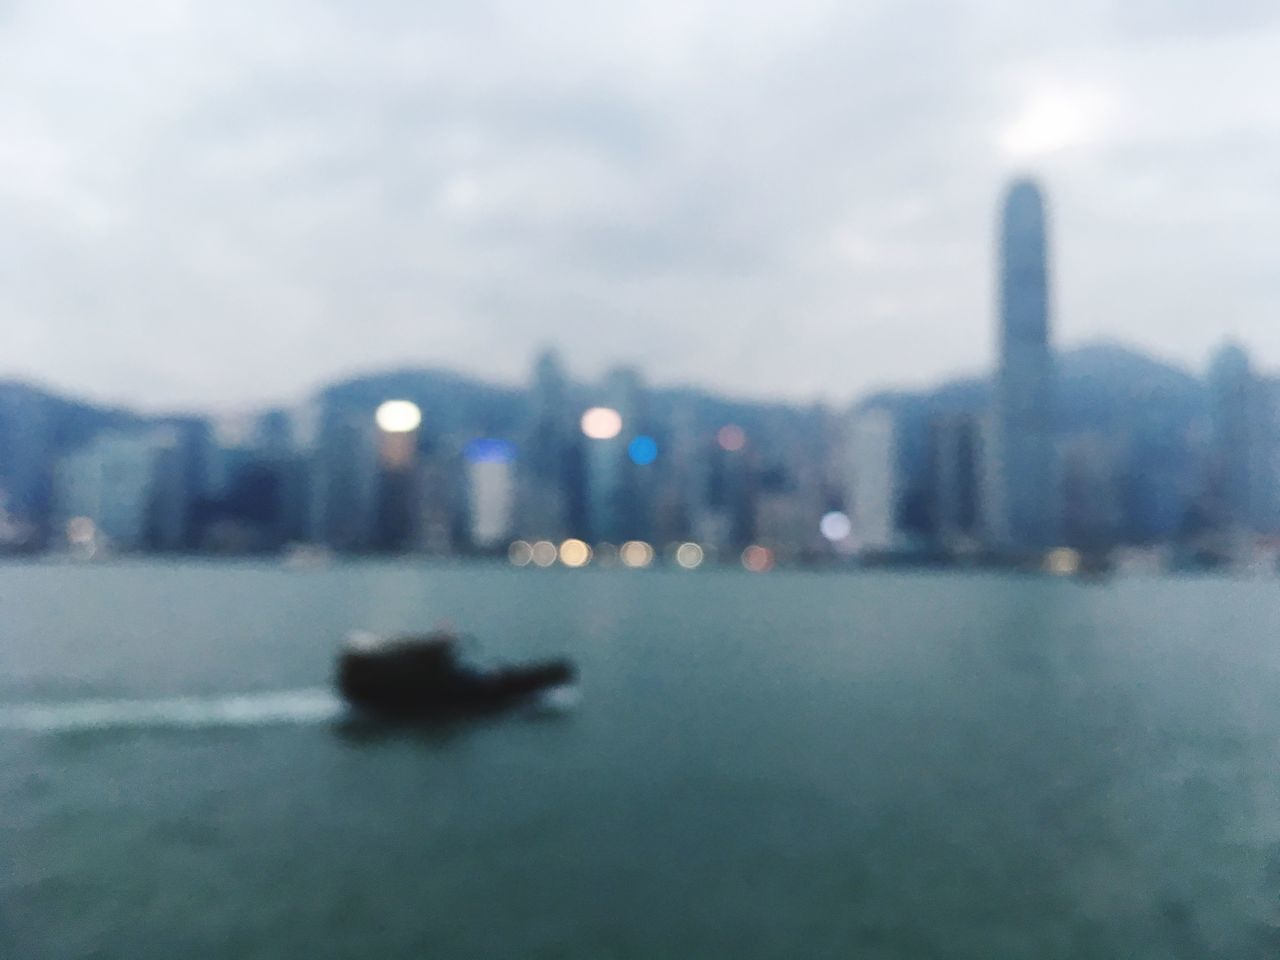 City Building Exterior Architecture Water Built Structure Cityscape No People Waterfront Sky Ship HongKong Skyline Skyscraper Travel Destinations Sea Urban Skyline Modern Day Nature